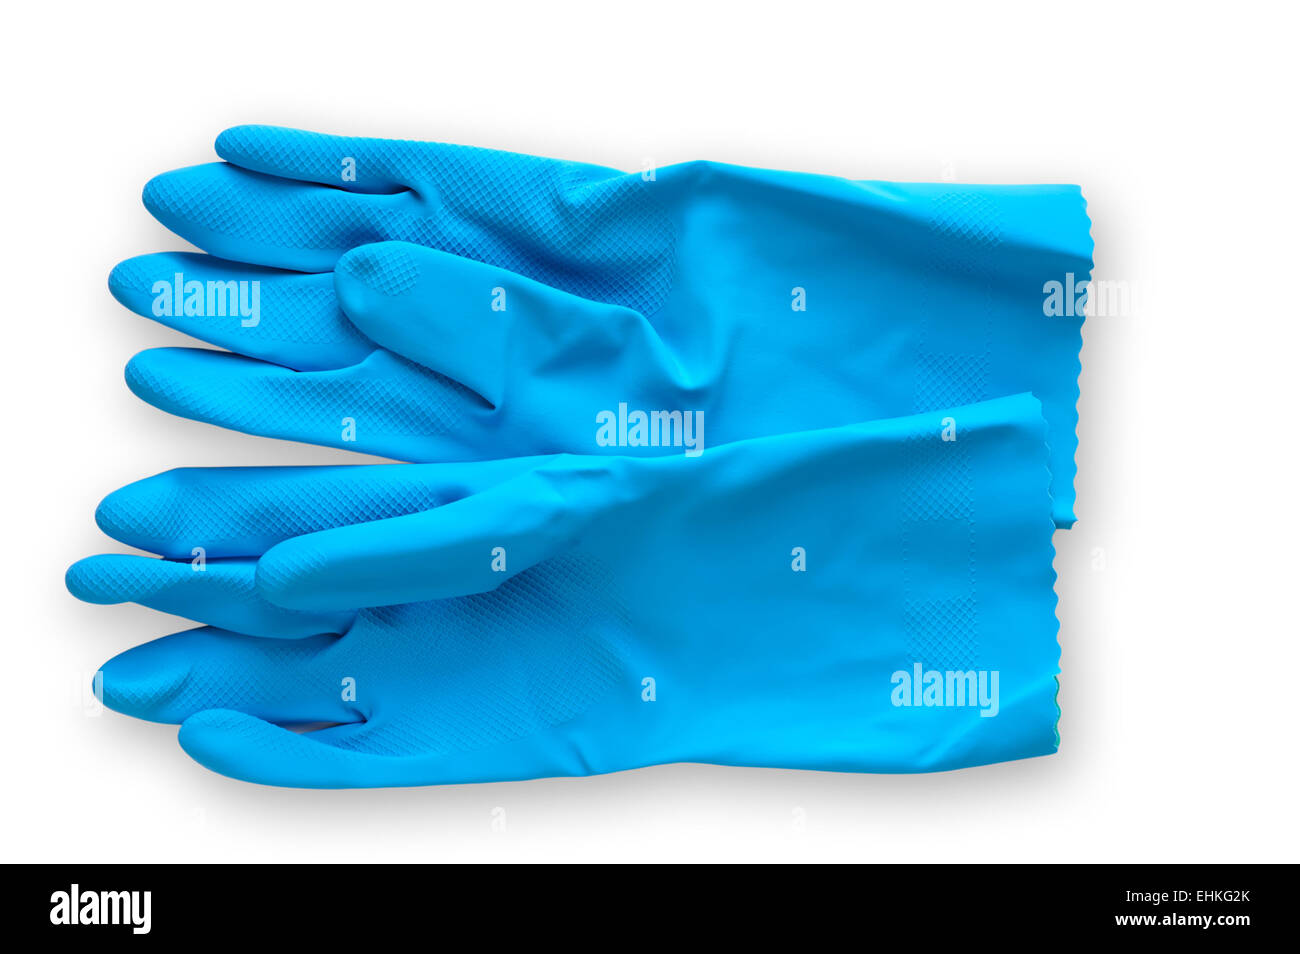 Work tool : rubber gloves with clipping path - Stock Image